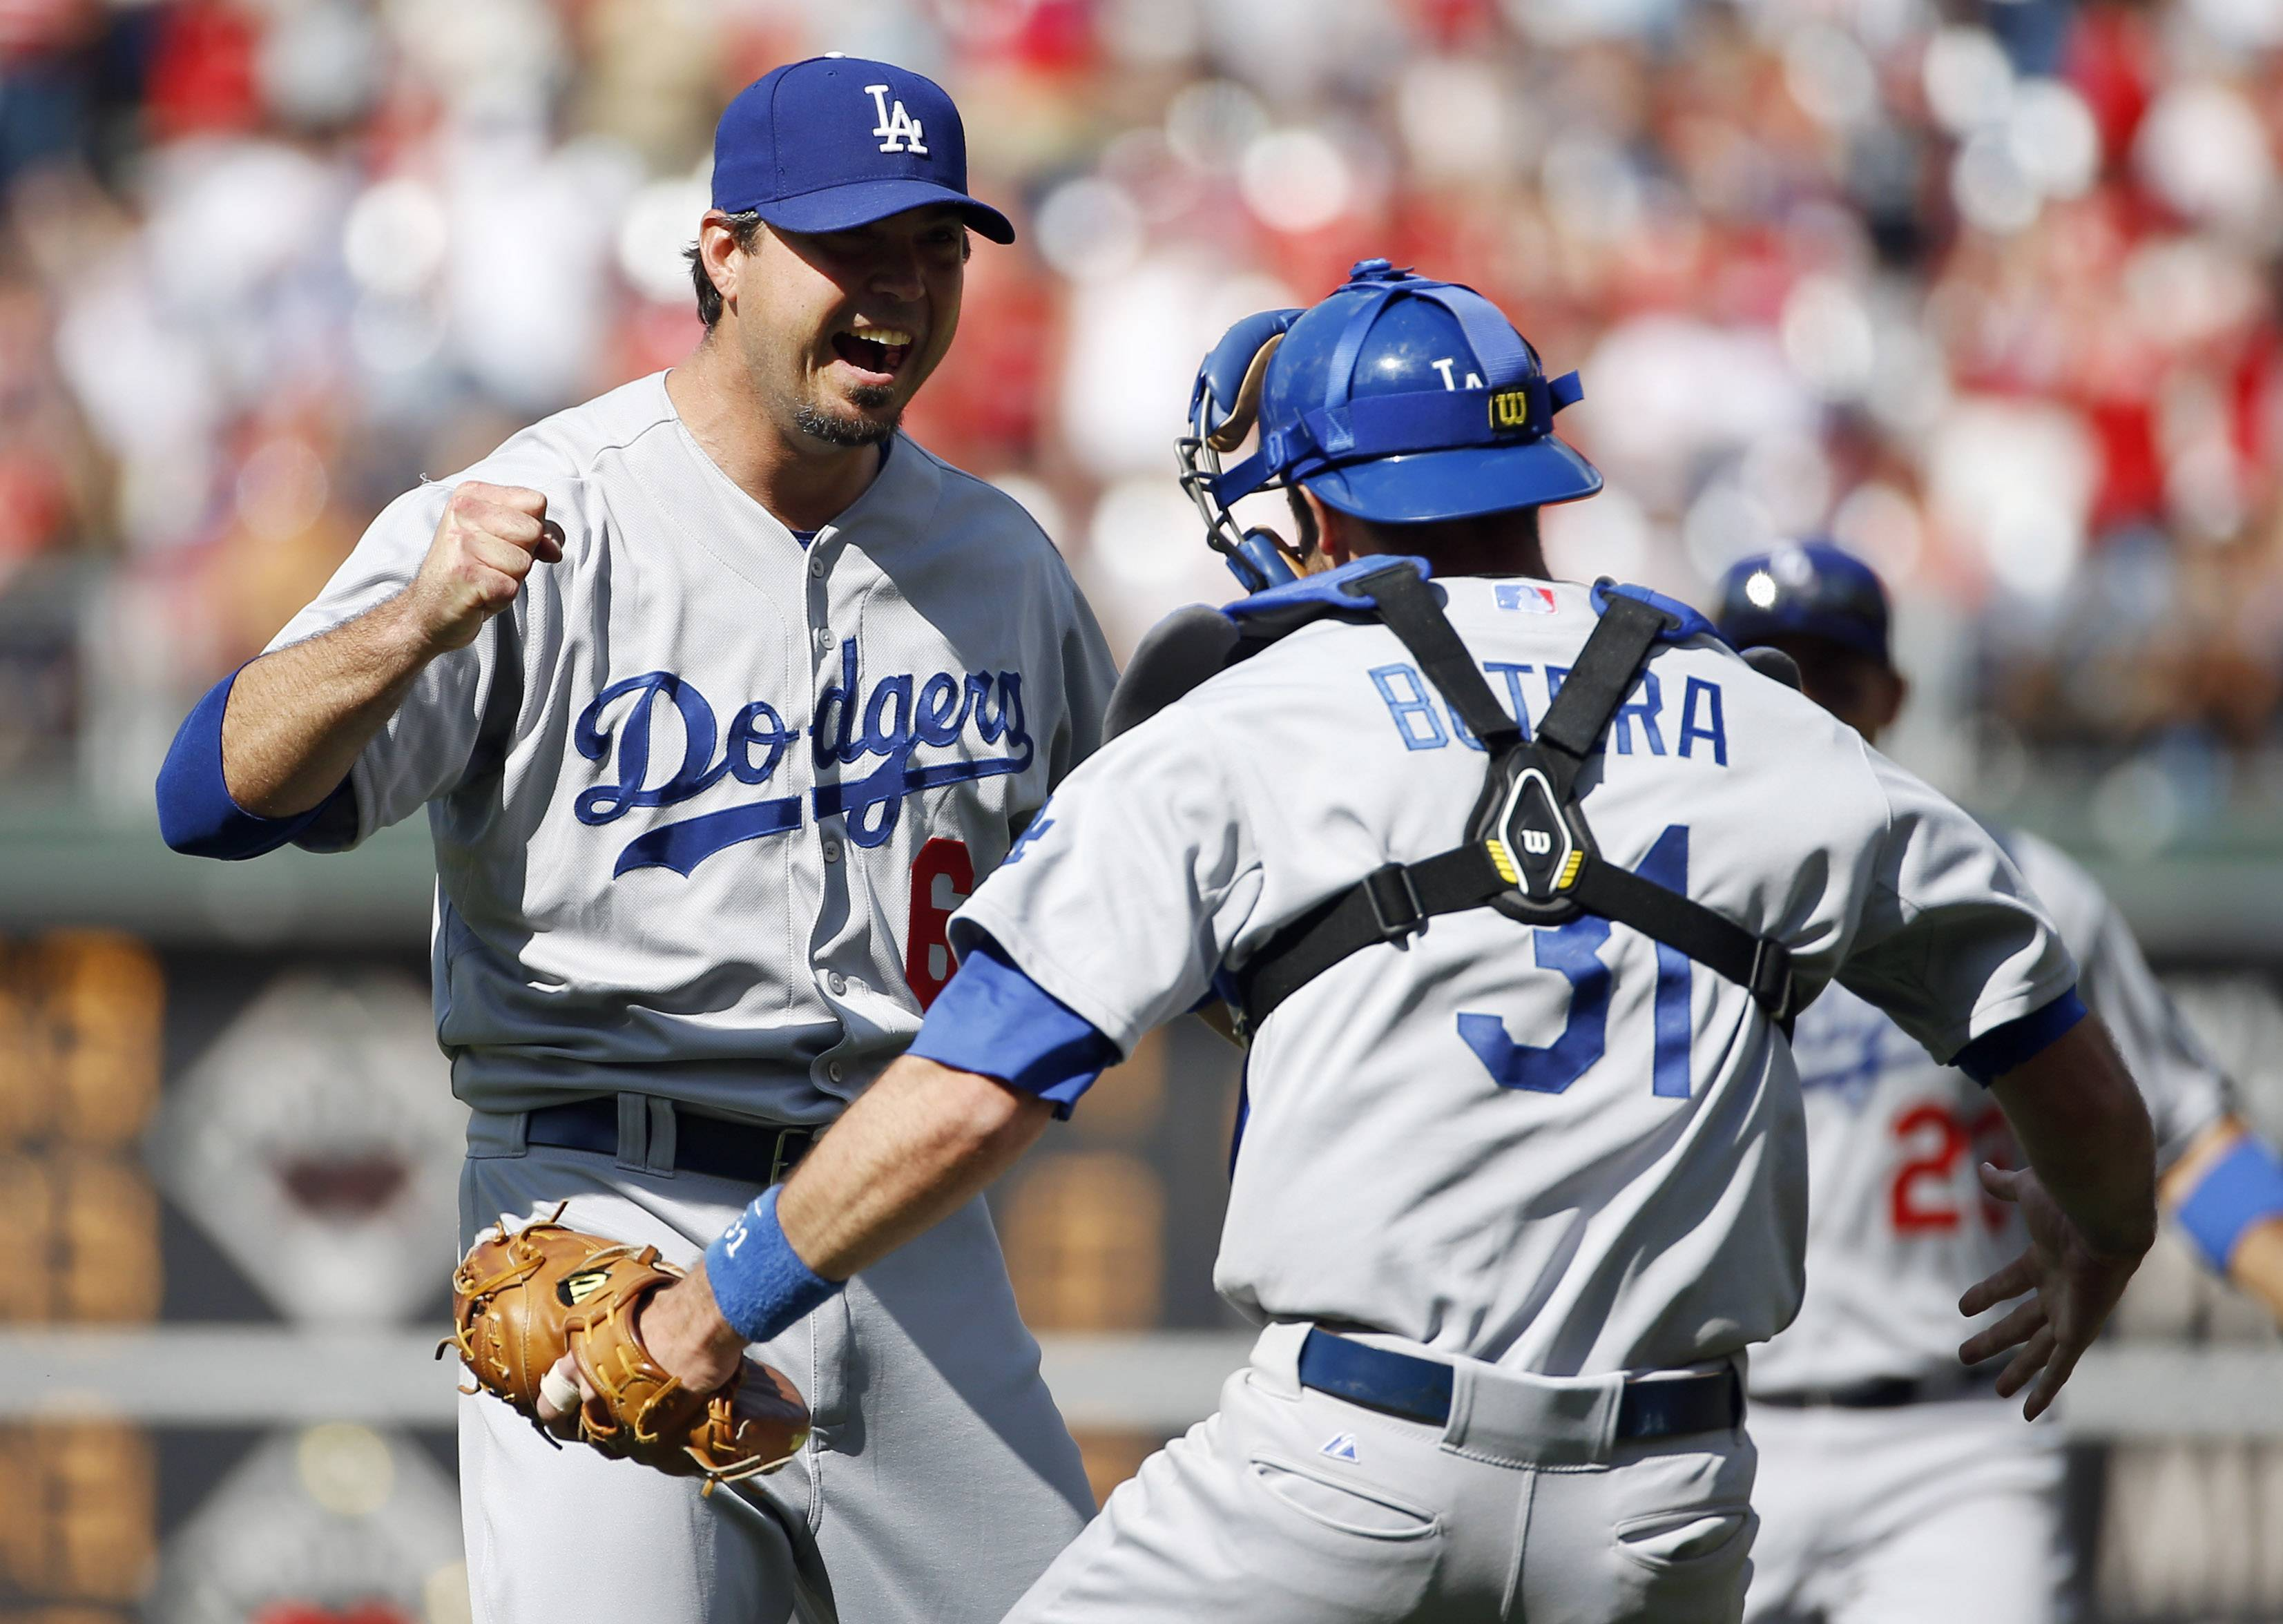 Los Angeles Dodgers starting pitcher Josh Beckett, left, celebrates with catcher Drew Butera after striking out Philadelphia Phillies' Chase Utley looking for a no-hitter baseball game, Sunday, May 25, 2014, in Philadelphia. Los Angeles won 6-0.